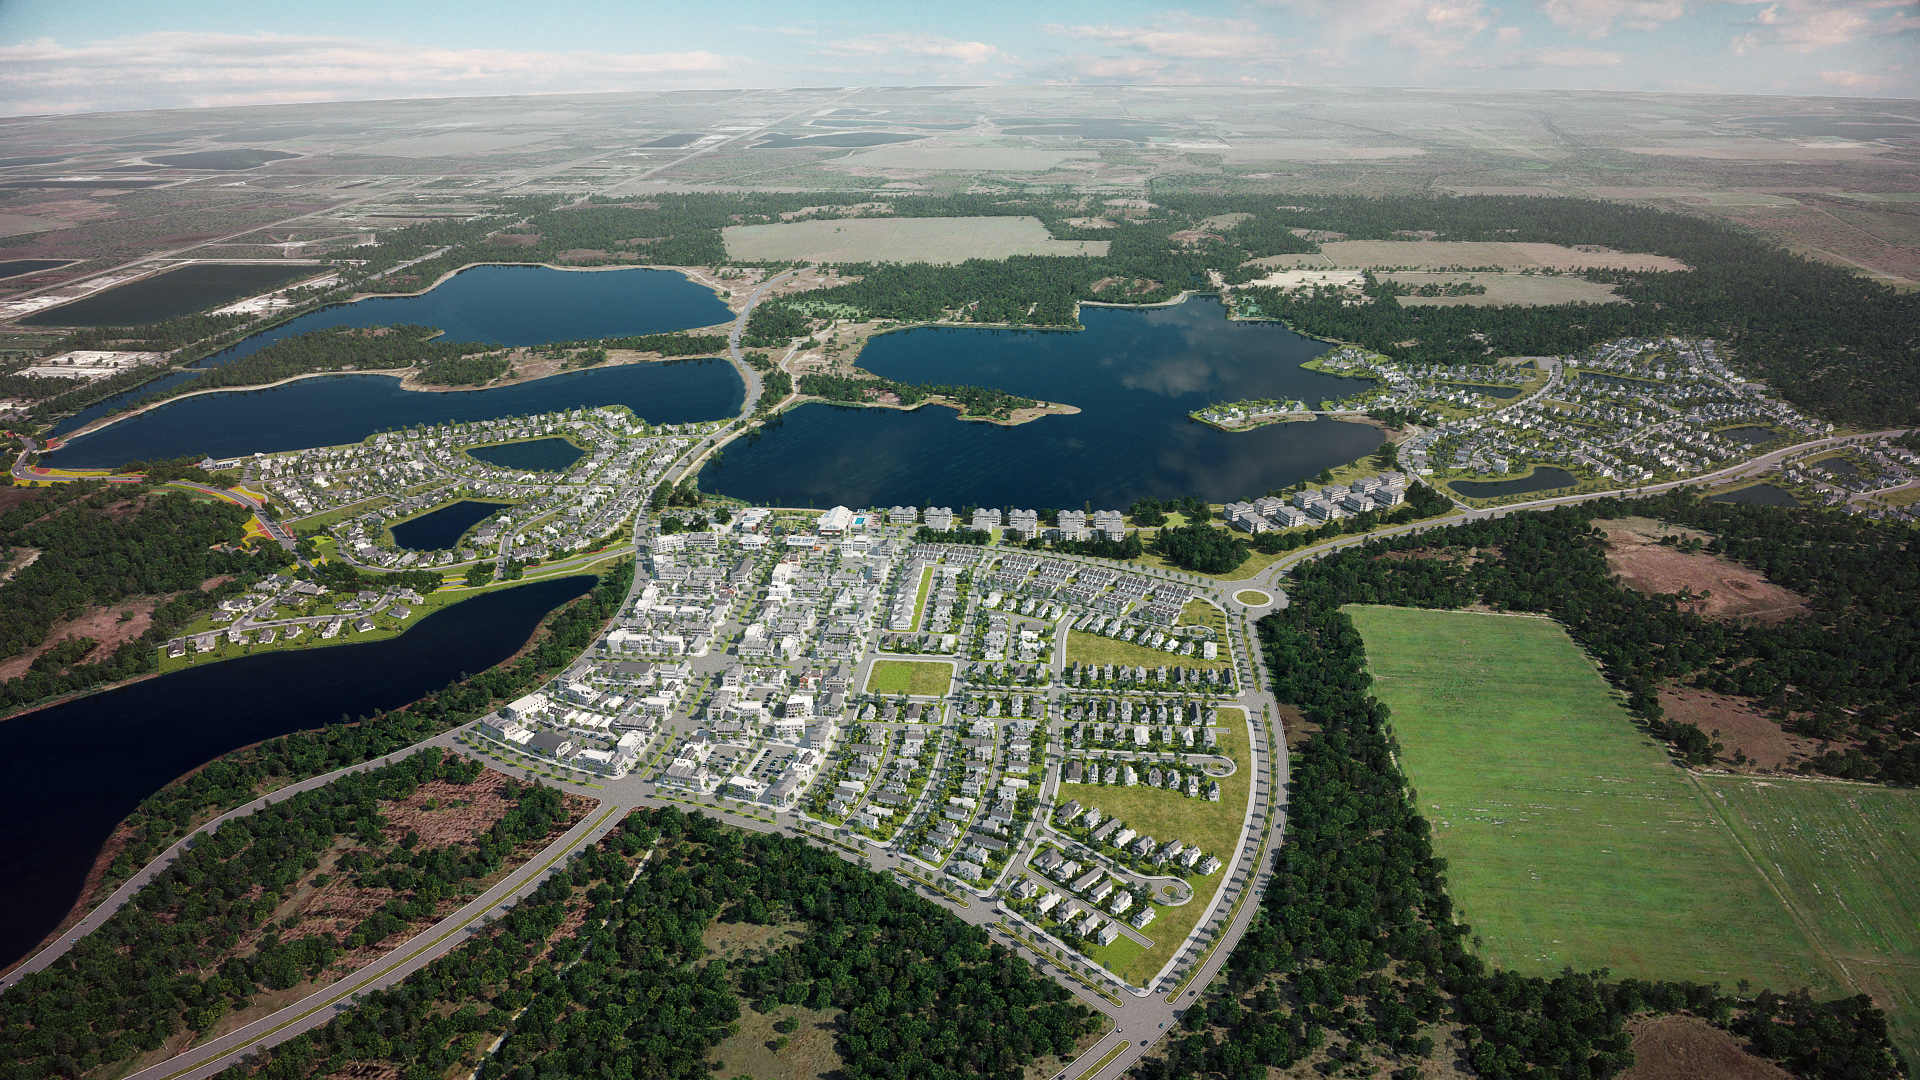 A Solar Powered Eco City For 50 000 Breaking Ground In Florida Curbed Eco City Sustainable Community City